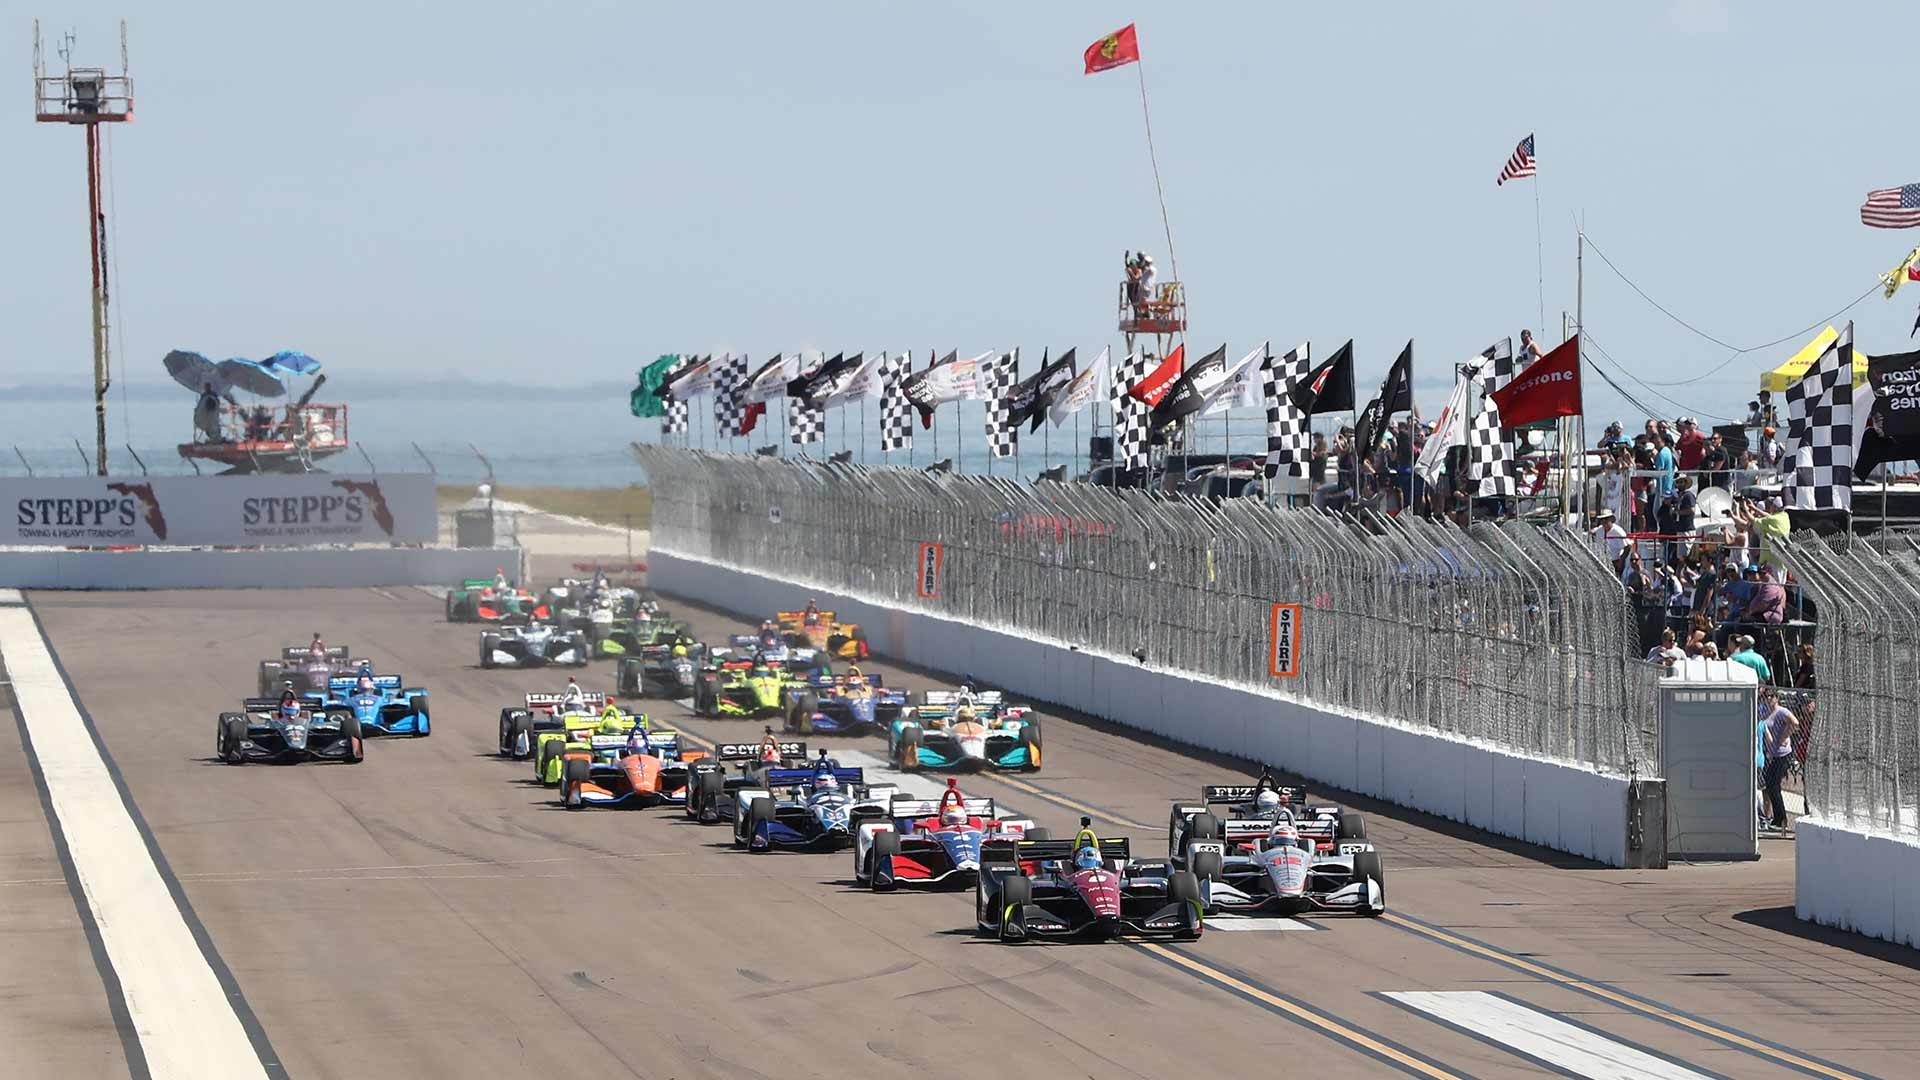 Green Flag at the 2018 Firestone Grand Prix of St. Petersburg